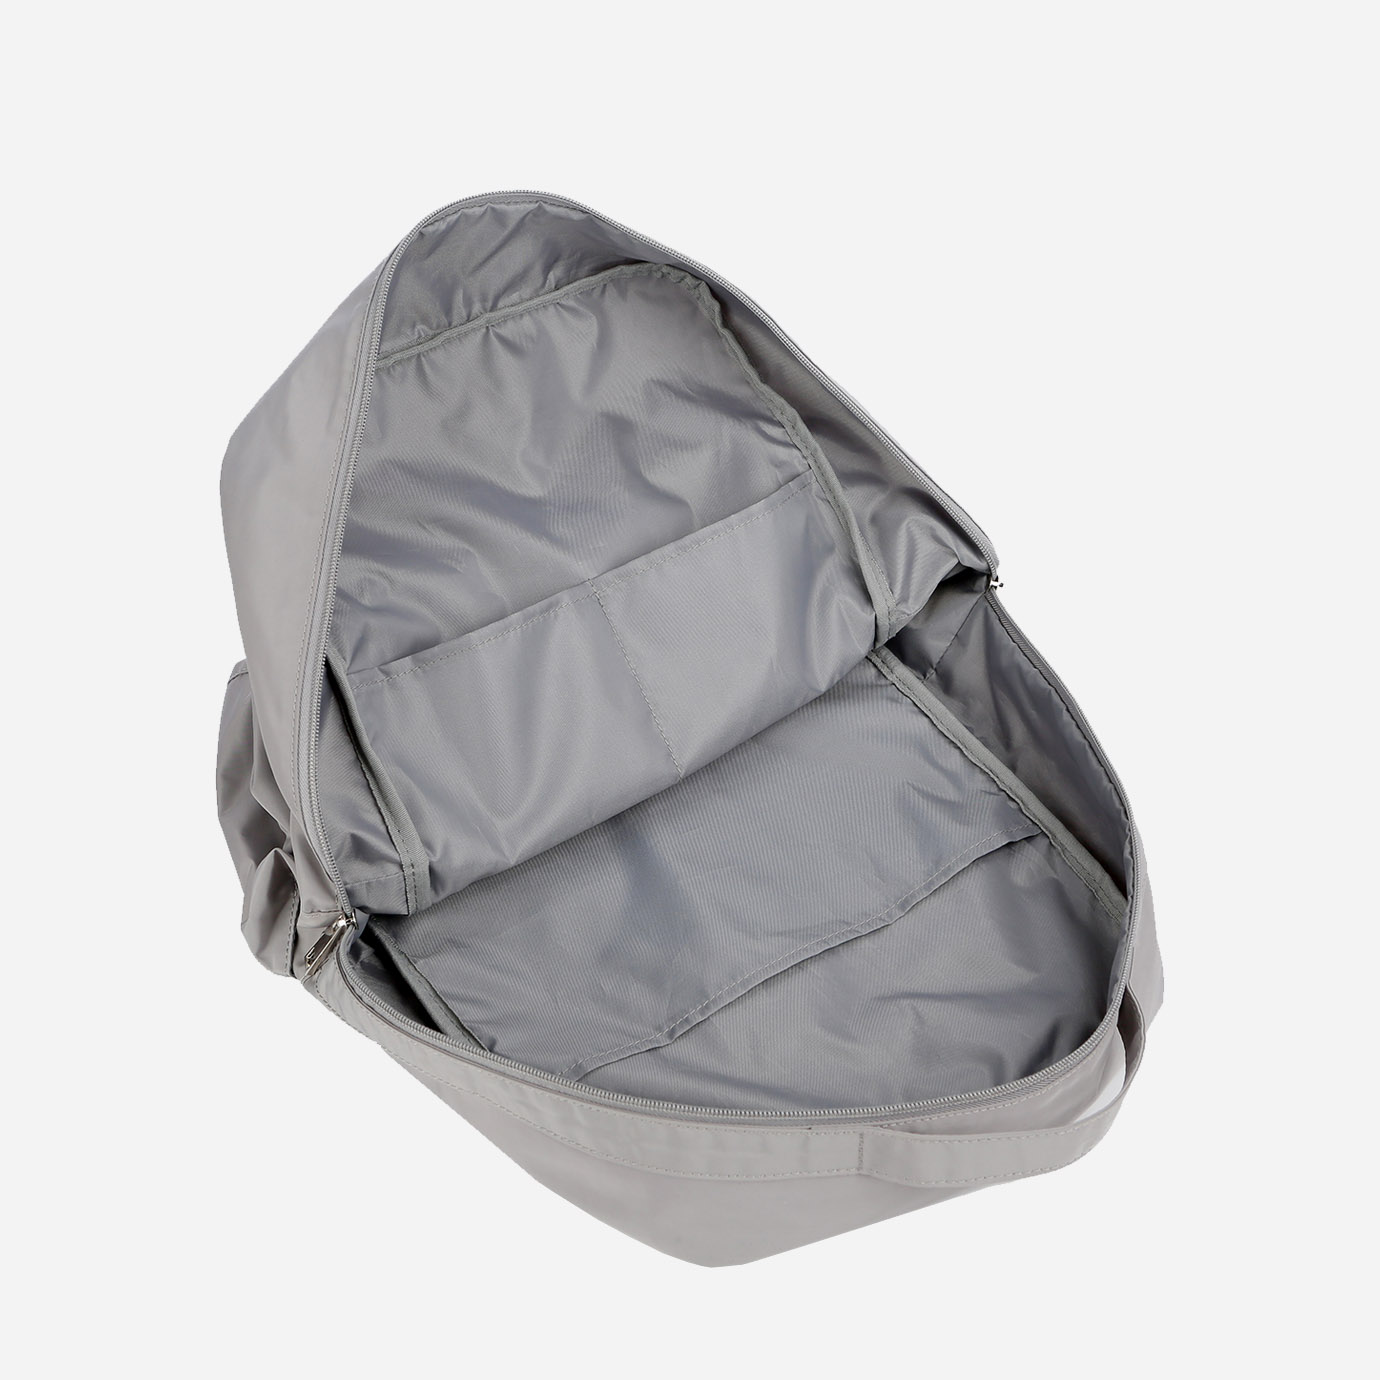 Nordace Wesel - Foldable Backpack